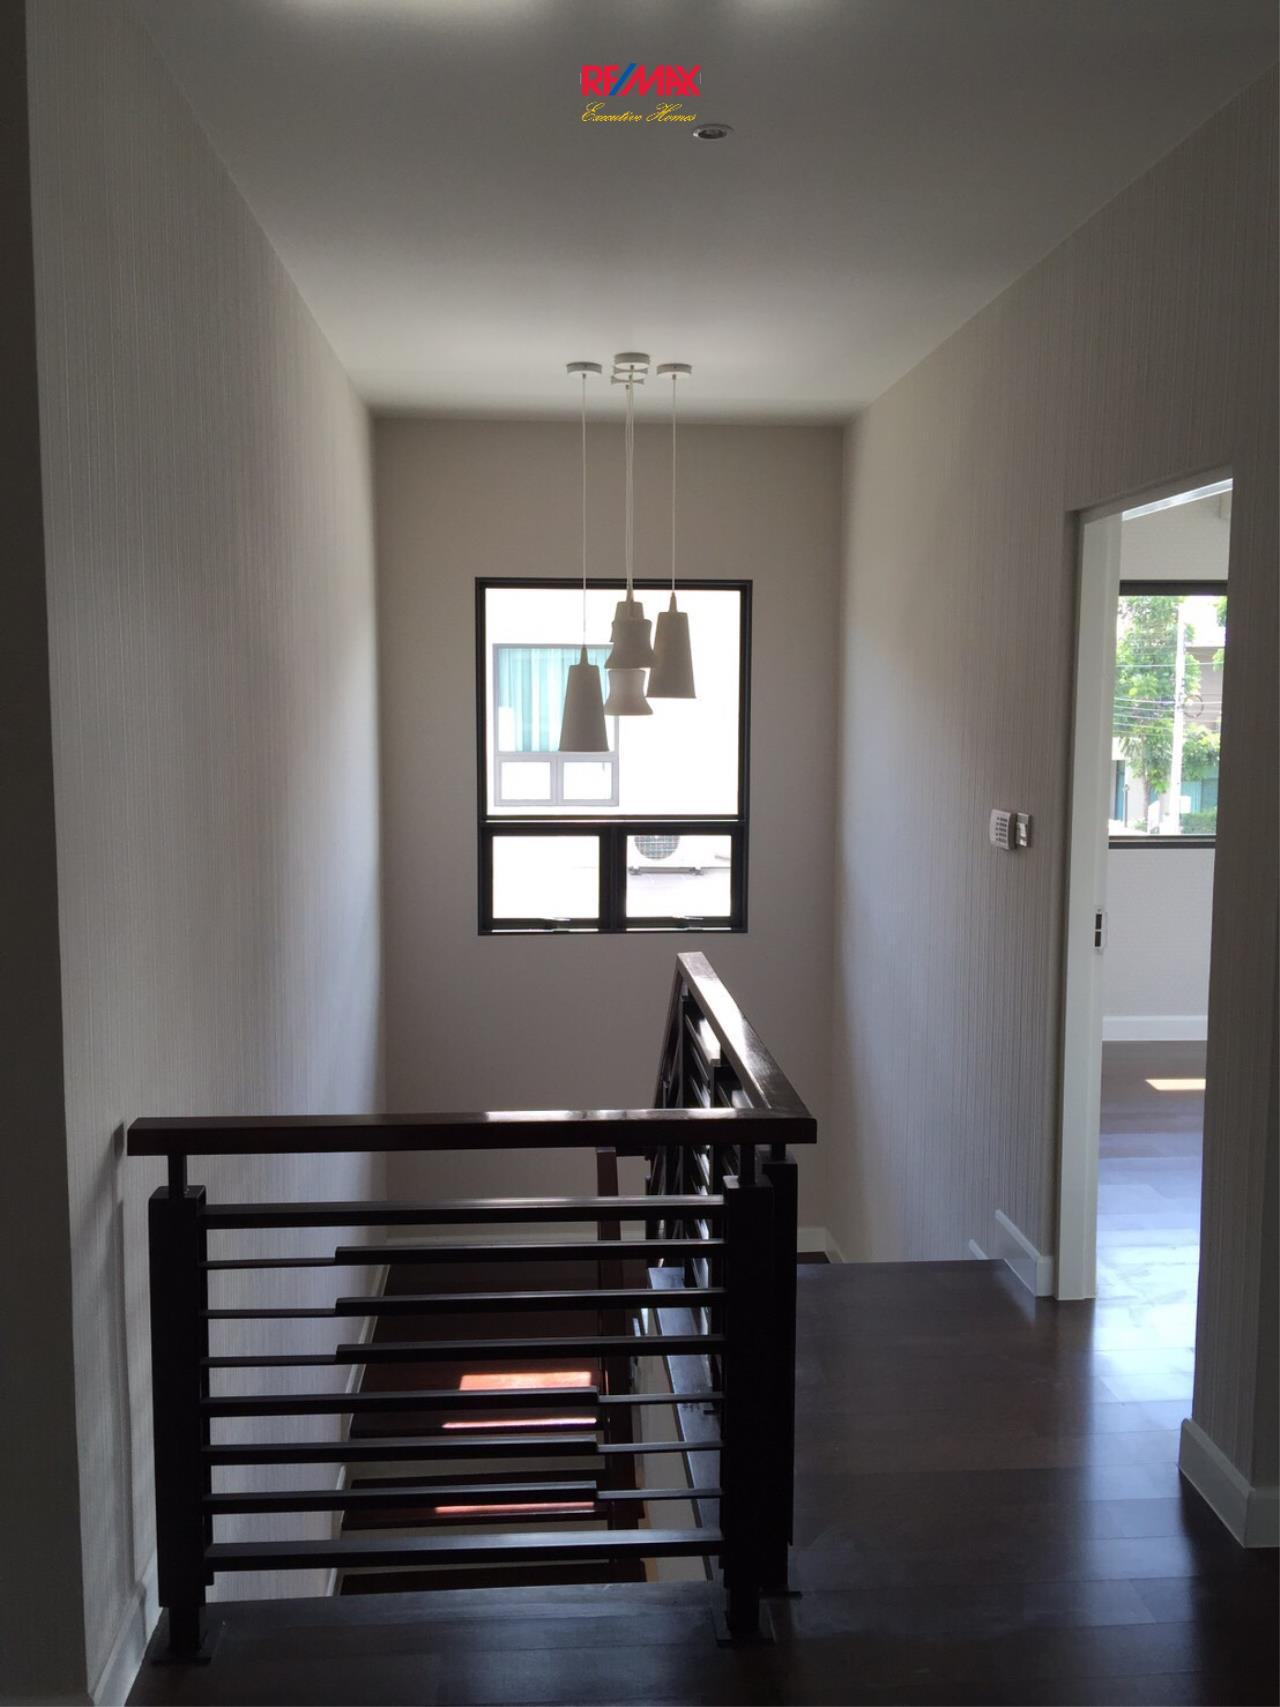 RE/MAX Executive Homes Agency's Stunning 4 Bedroom Townhouse for Sale Settasiri On Nut 4